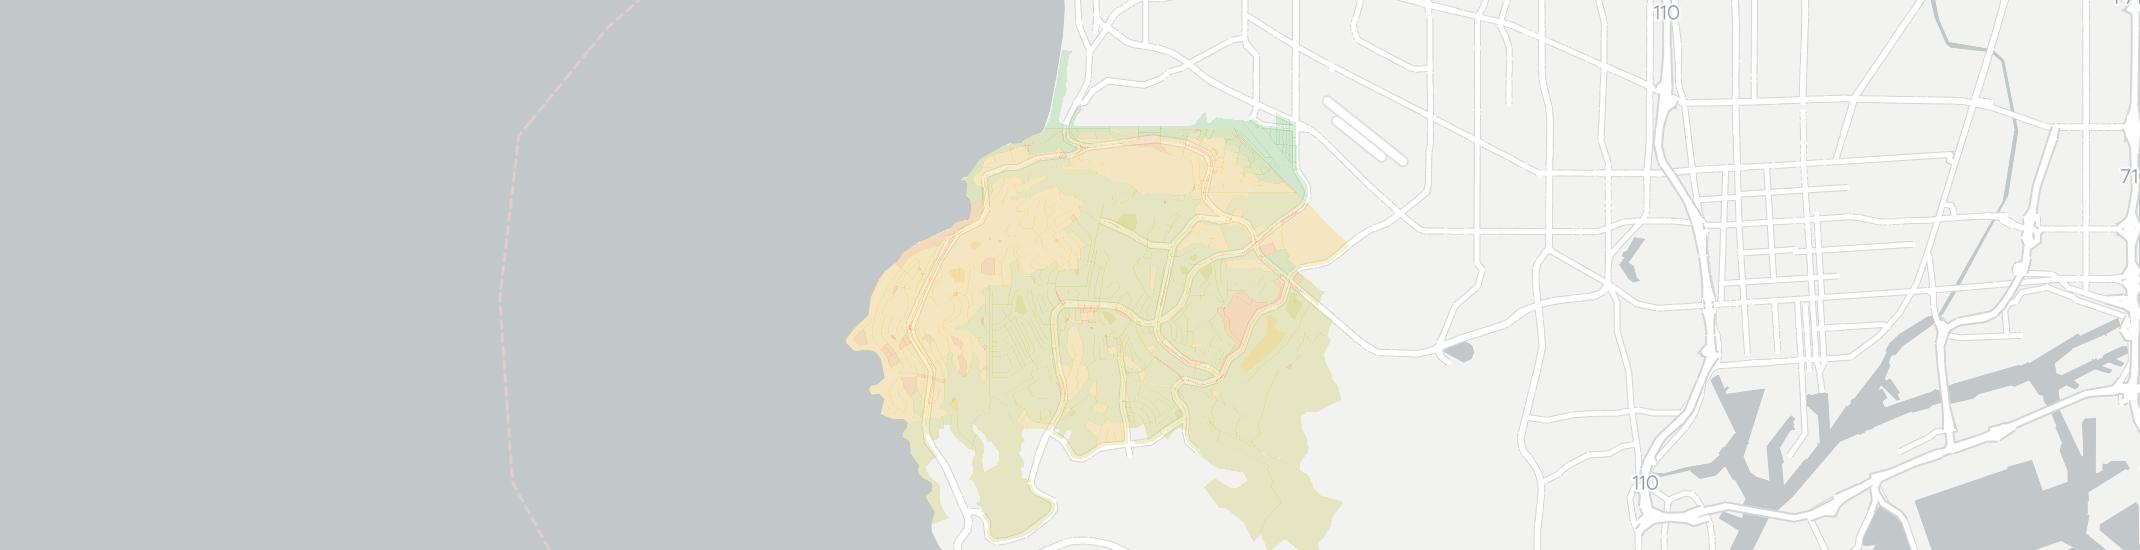 Palos Verdes Zip Code Map.Internet Providers In Palos Verdes Estates Ca Compare 14 Providers